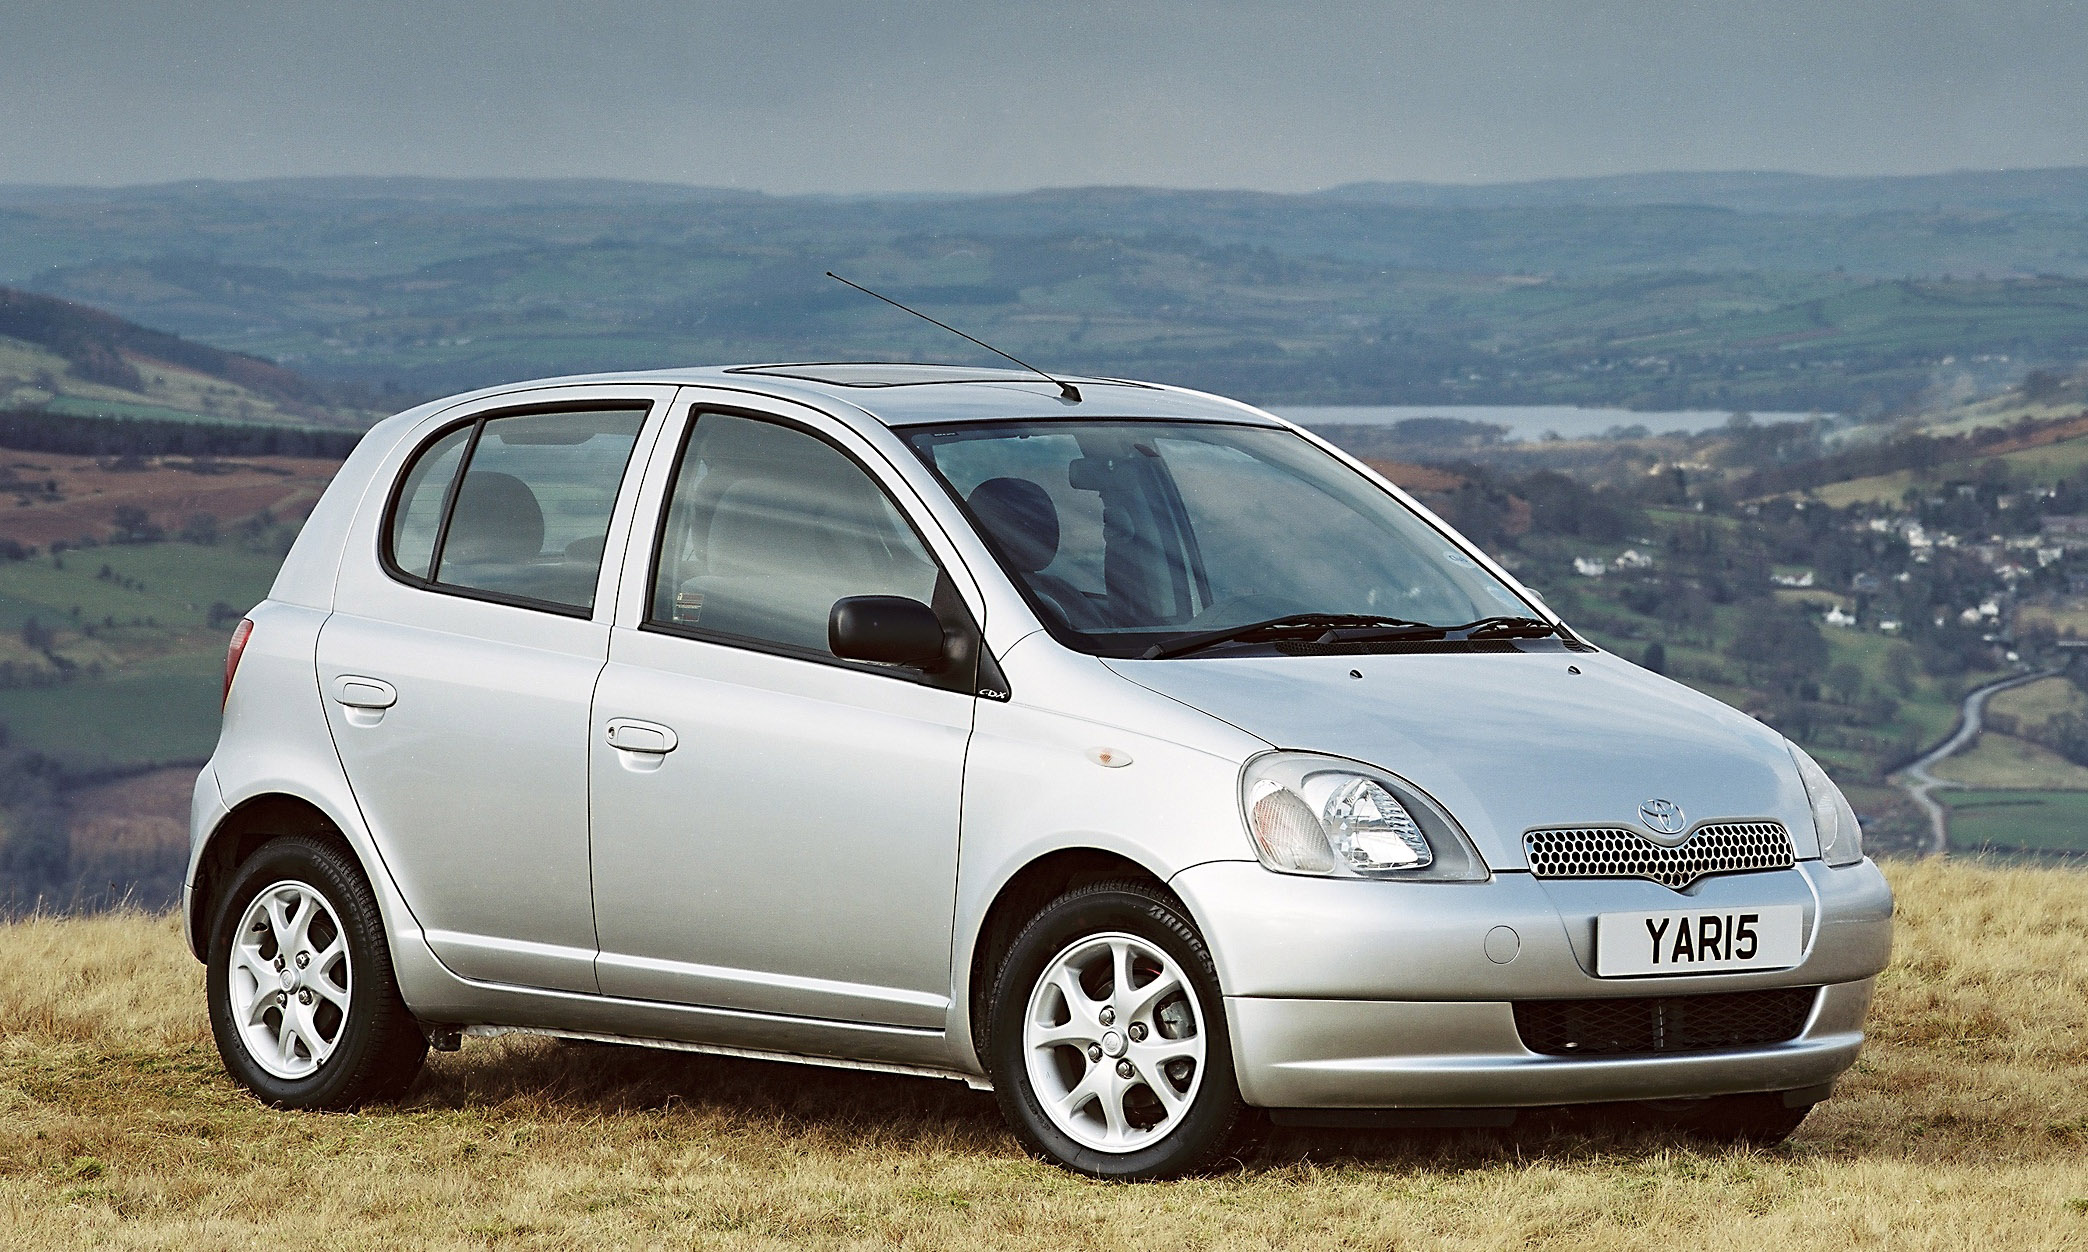 1999 Toyota Yaris Picture 76745